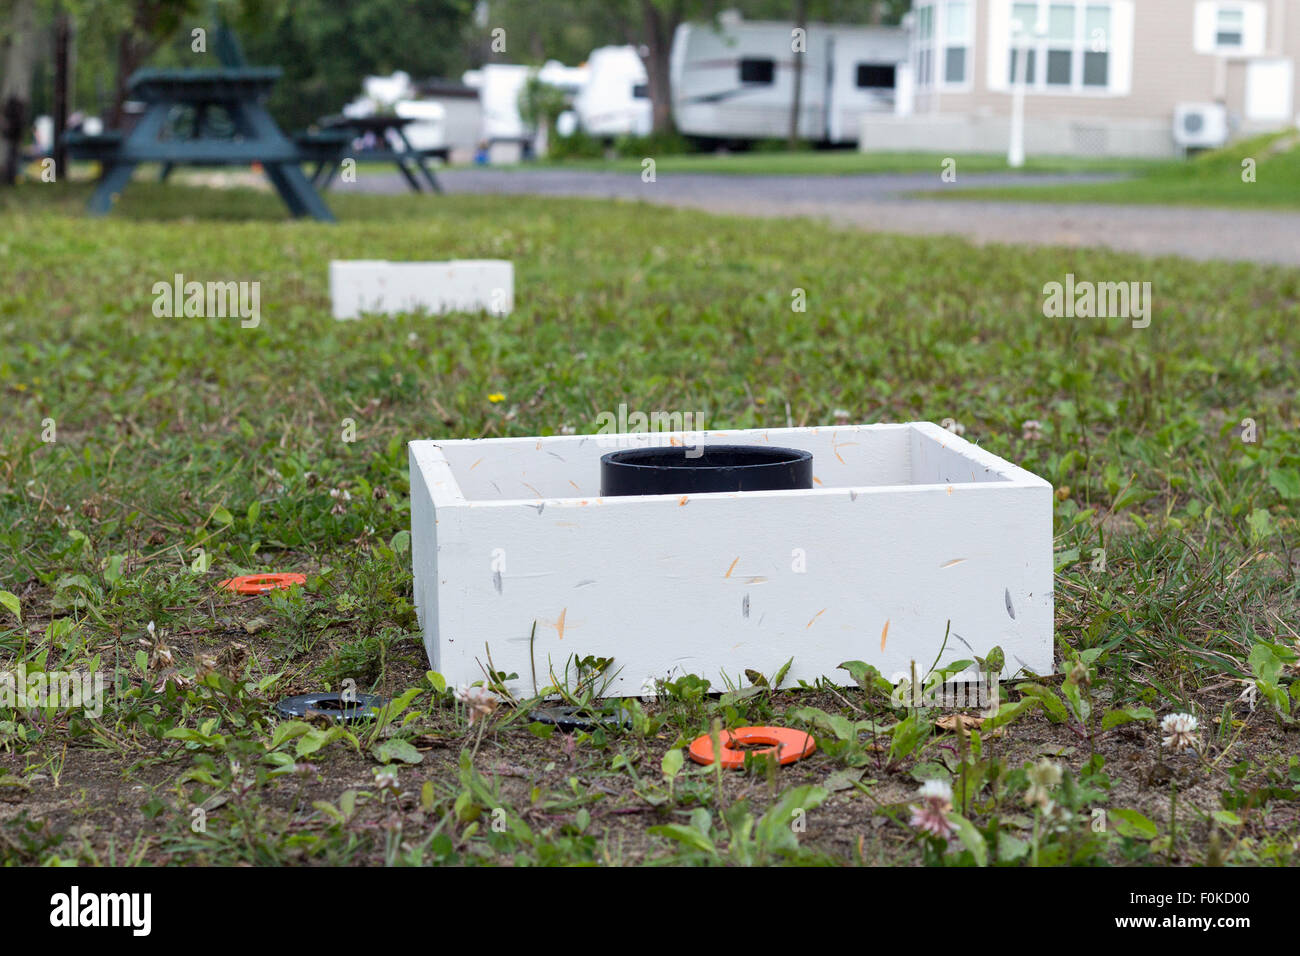 washers tossing game on grass on a camping.It is a game, similar to horseshoes - Stock Image